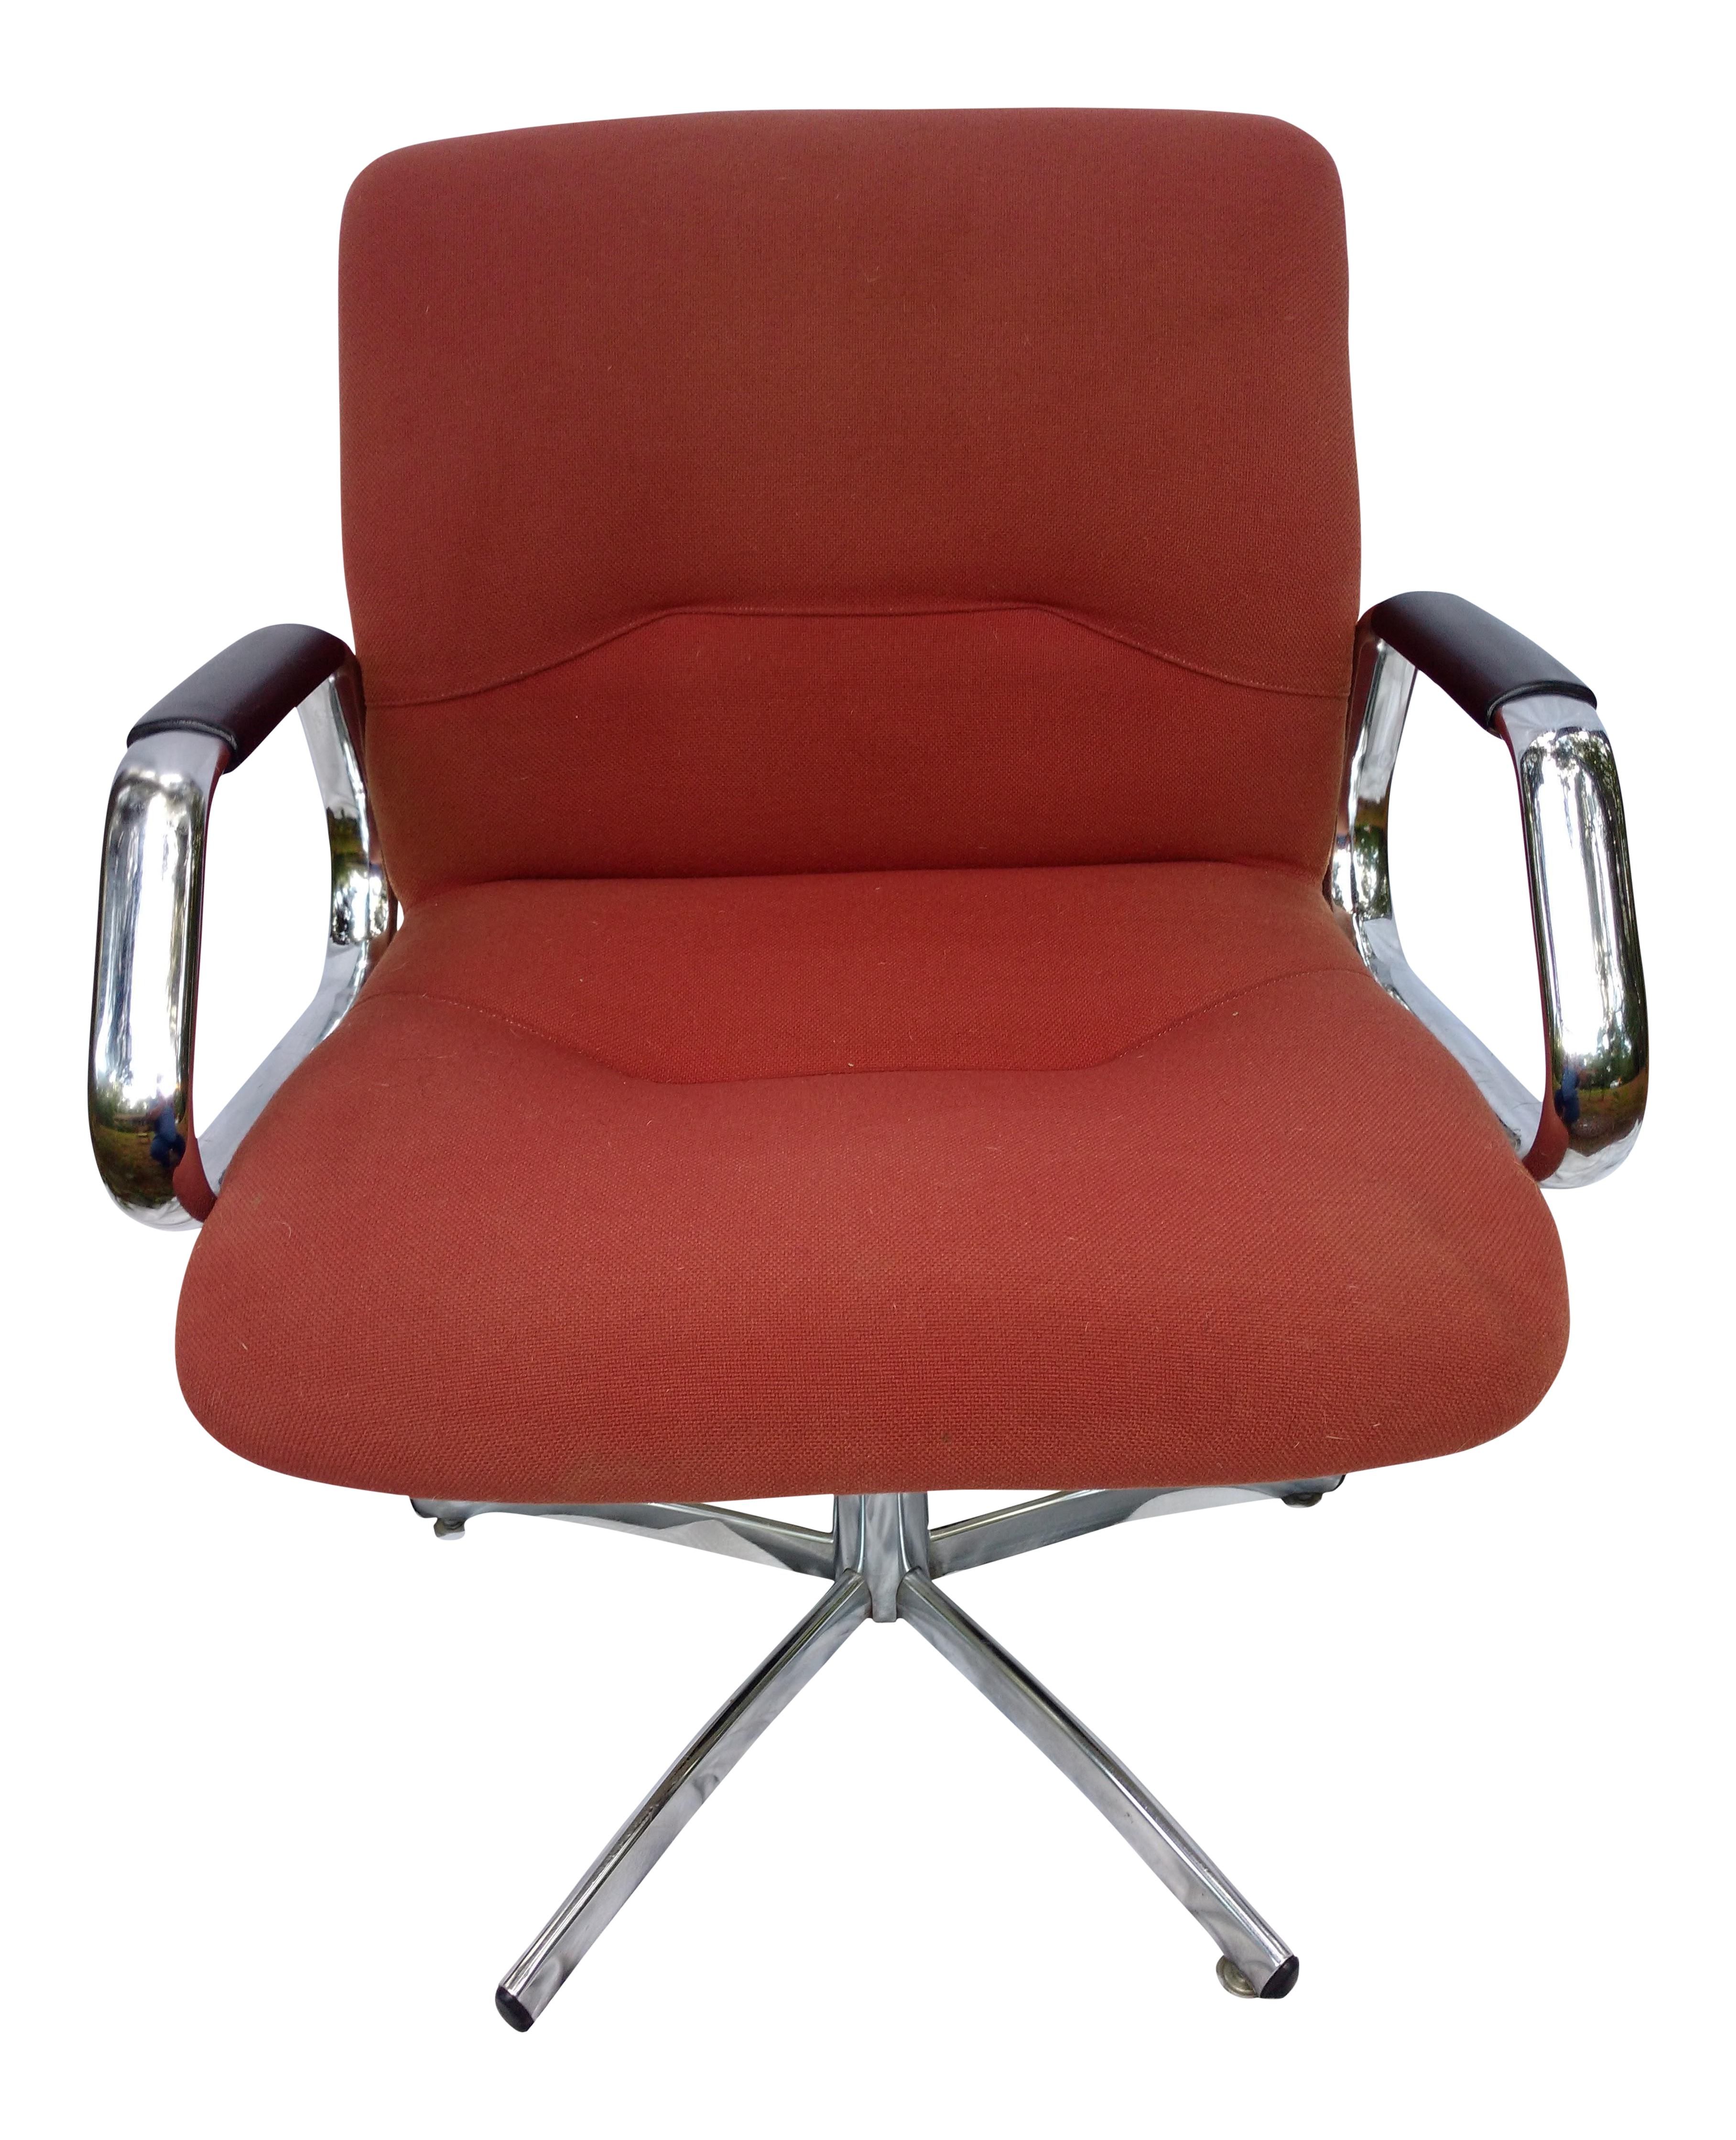 office chair vintage. Vintage Steelcase Office Chair